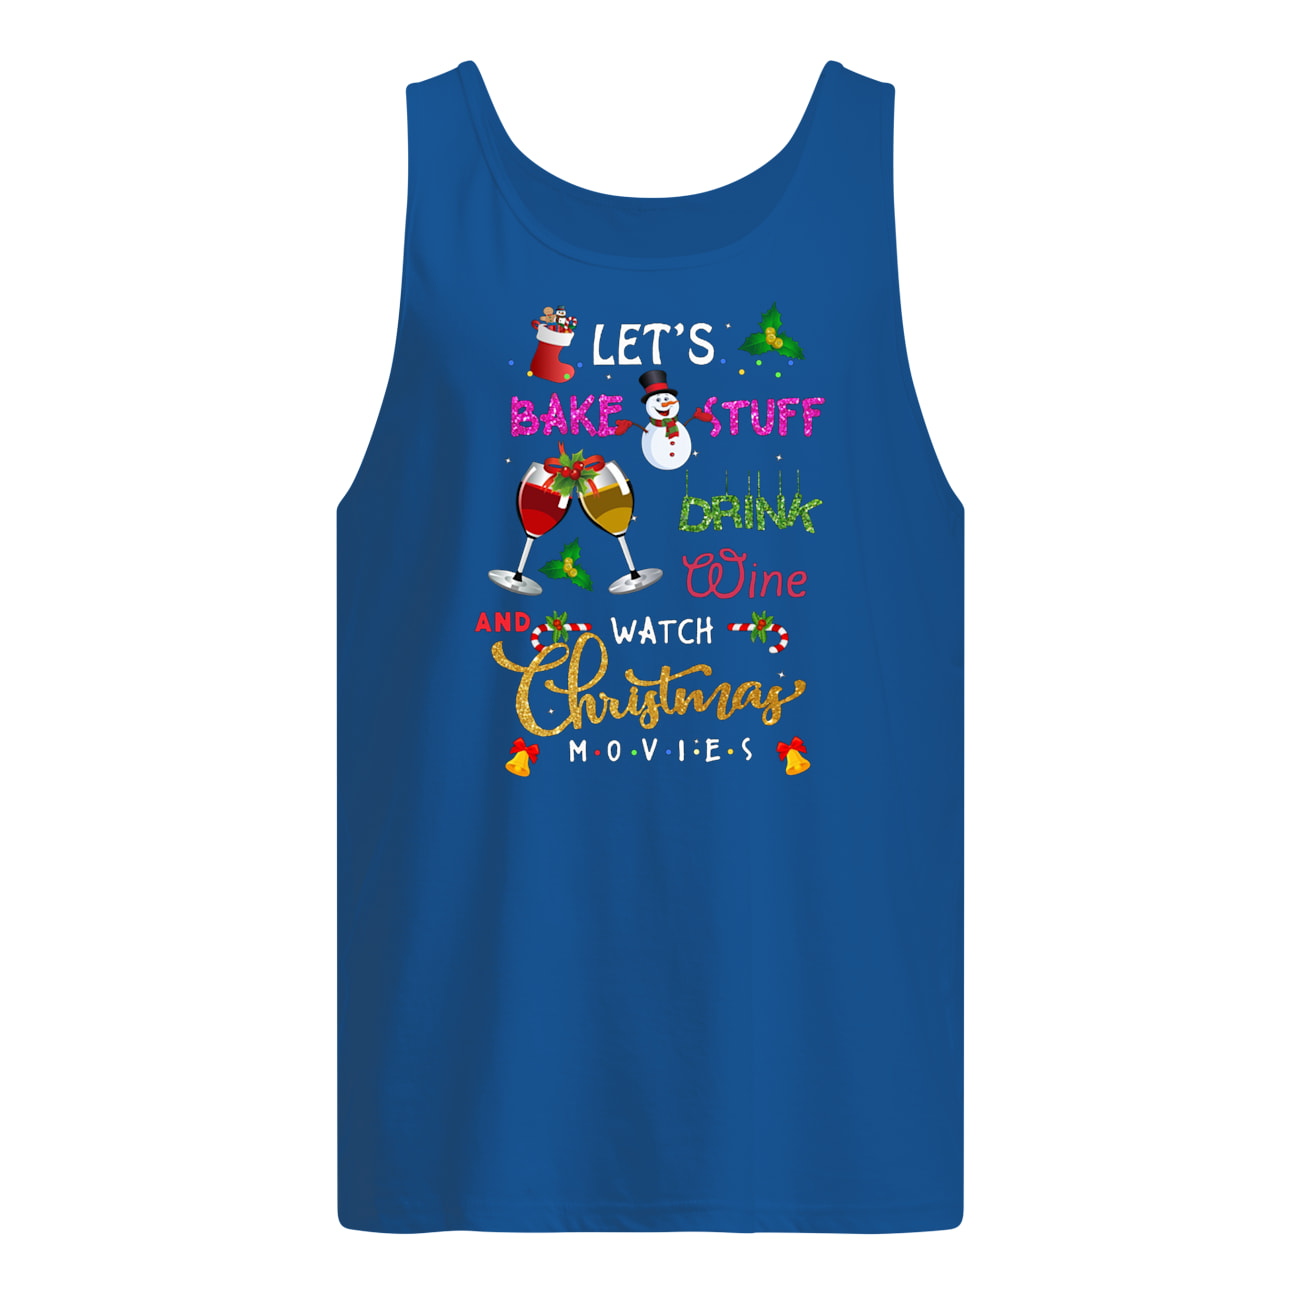 Let's bake stuff drink wine and watch christmas movies tank top